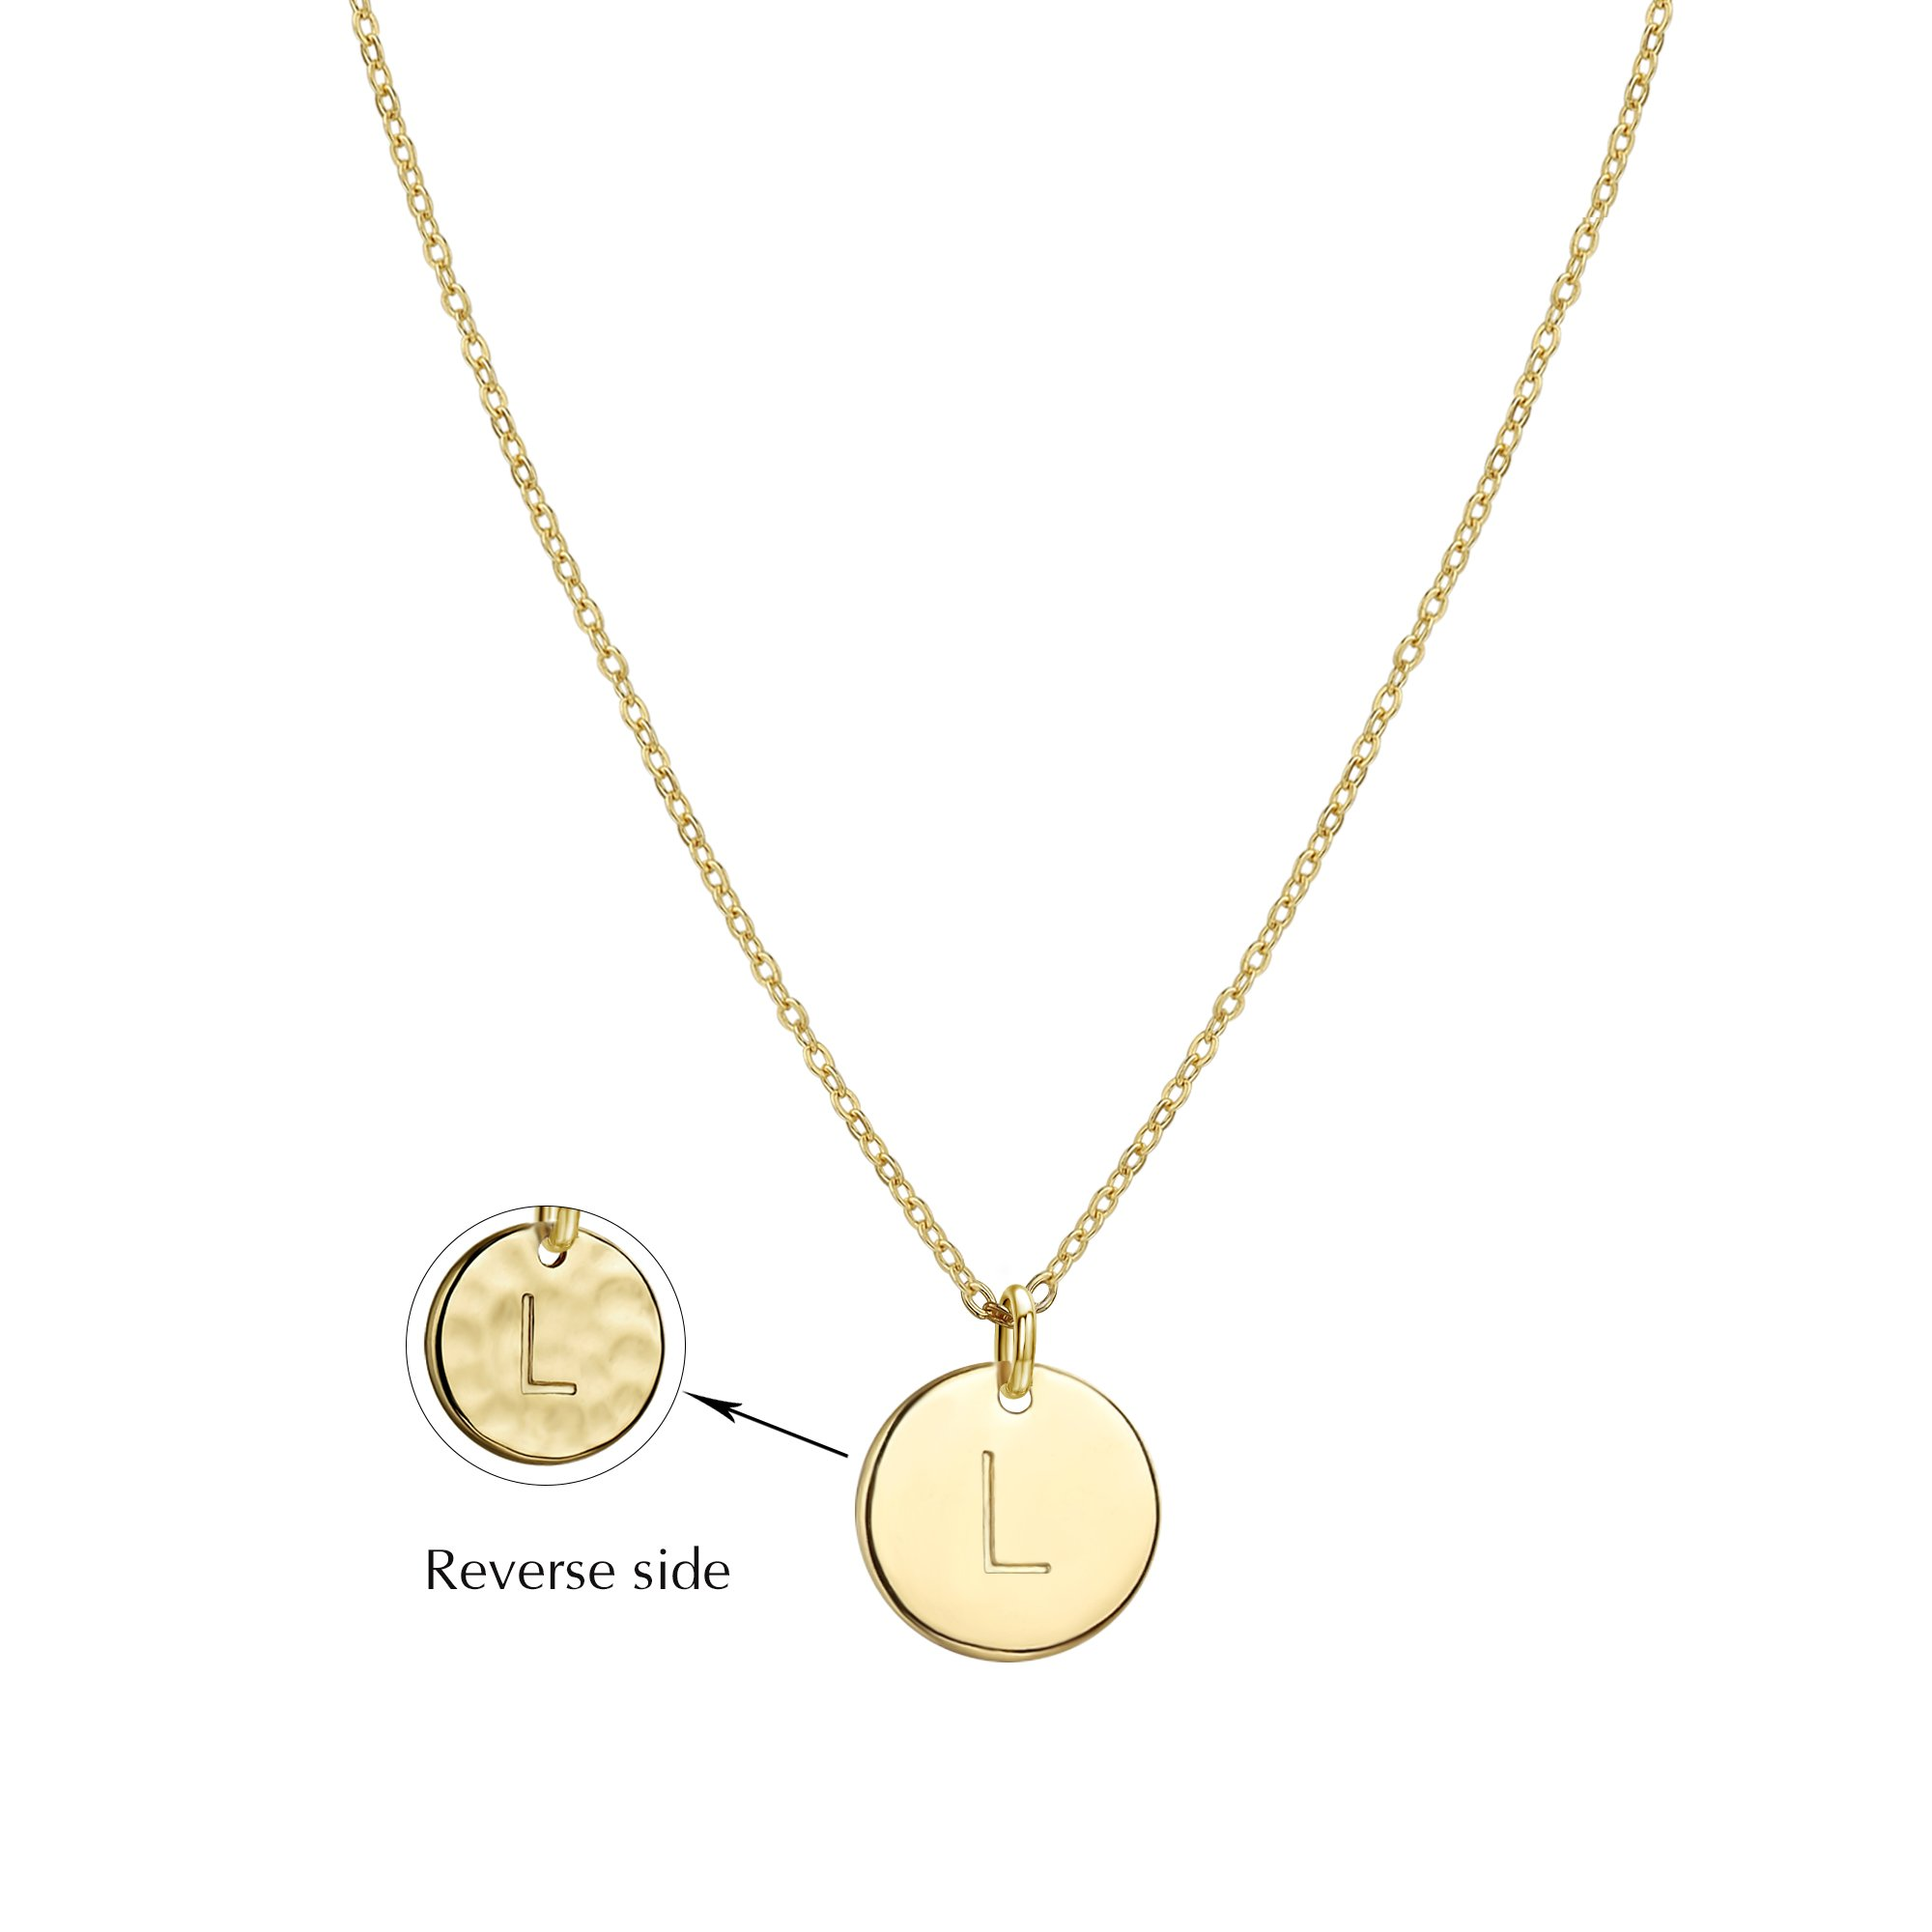 Befettly Hammered Necklace Pendant 14K Gold-Plated Round Disc Double Side Engraved Initial Pendant 17.5'' Adjustable Necklace with Personalized Alphabet Letter L